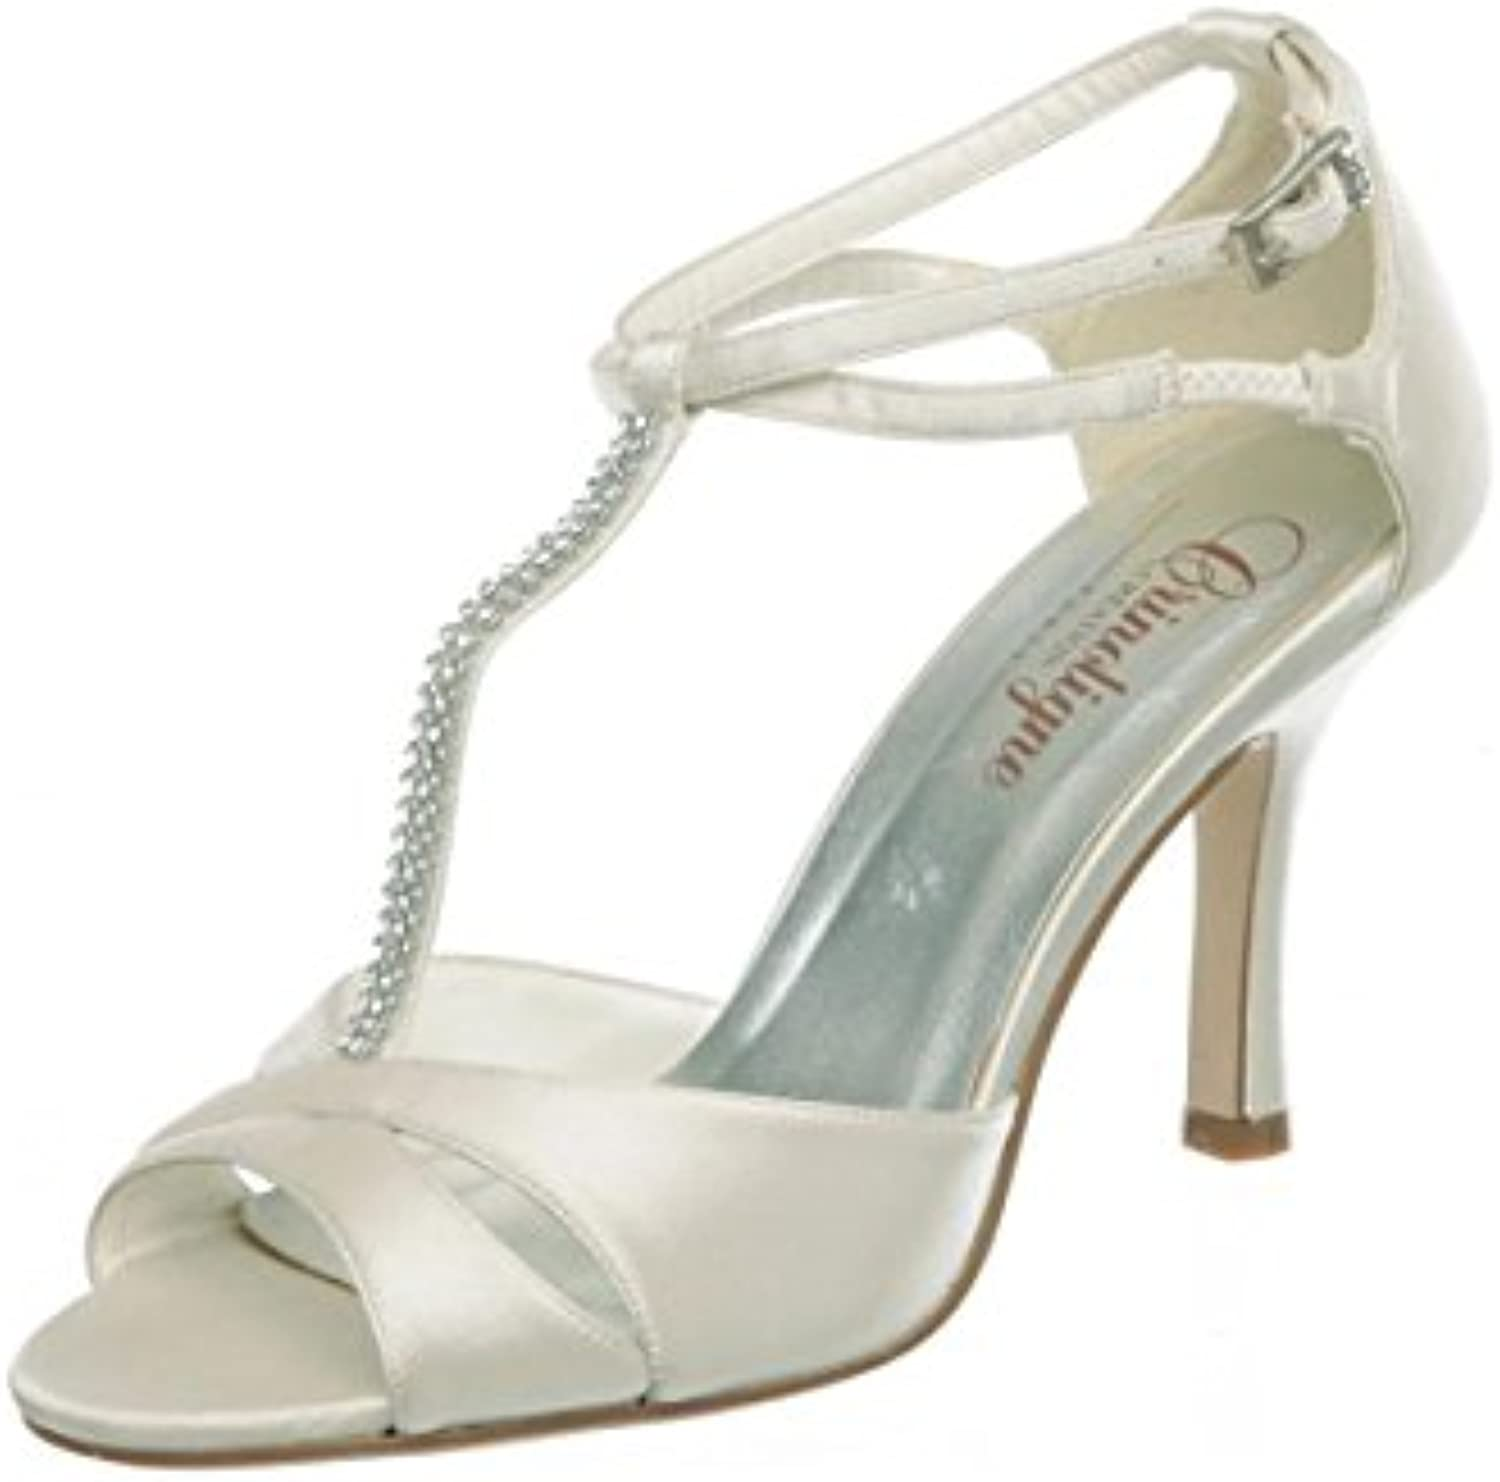 222d7f9ec Mr Ms Salomé shoe for ceremony B00J9D7BWO Parent Reasonable price a a a  good reputation in the